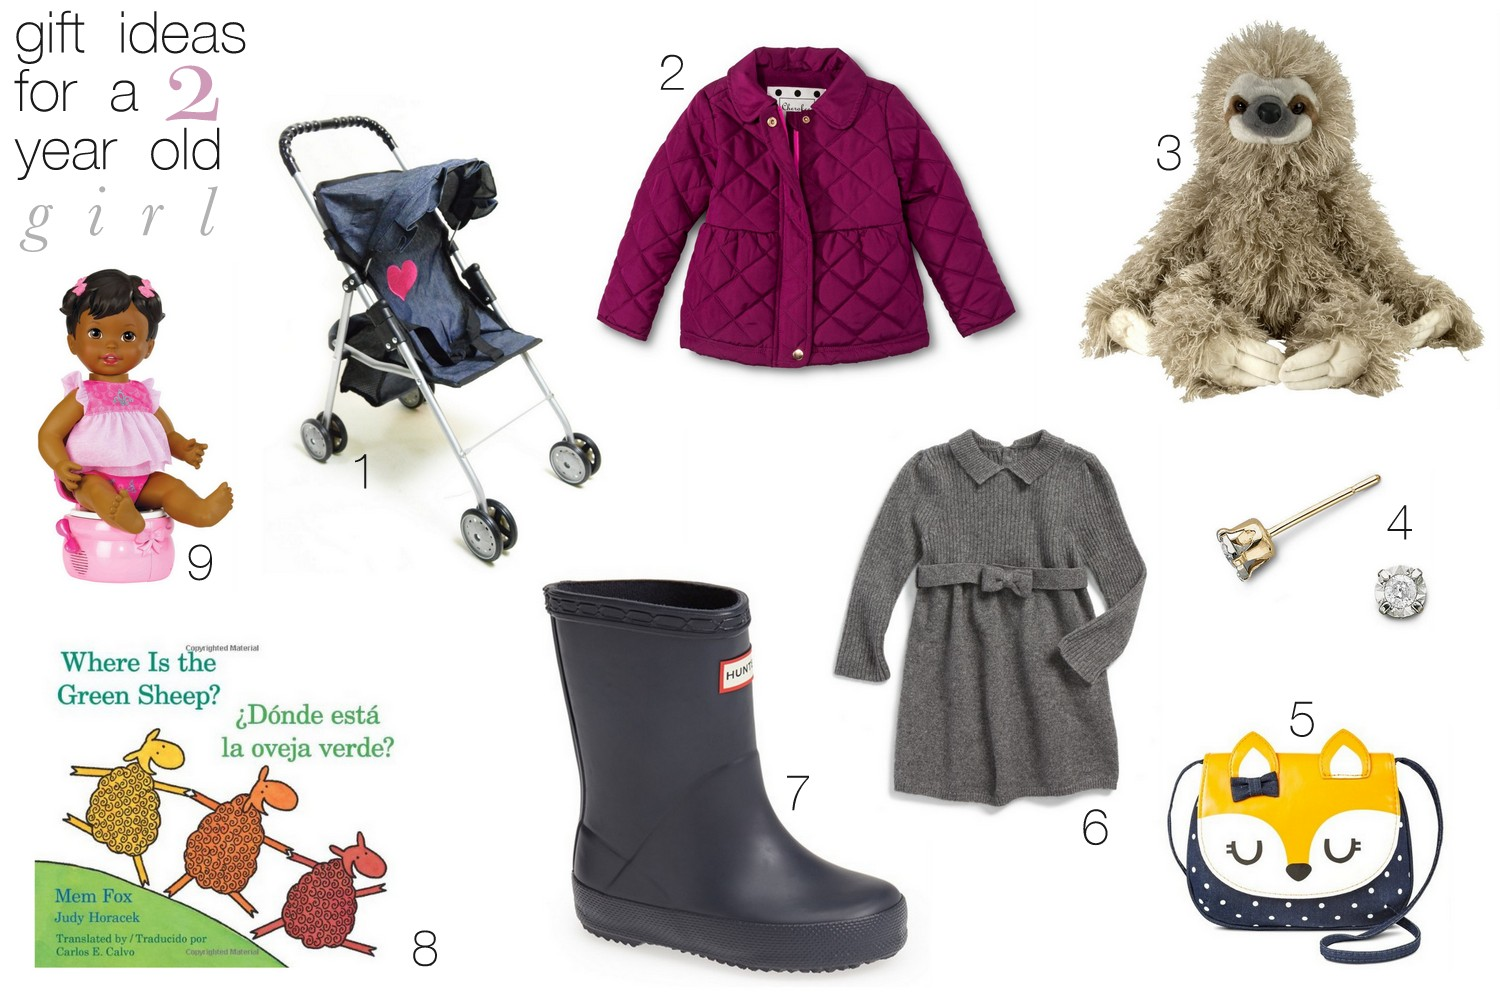 A LITTLE BIT OF LACQUER: Gift Ideas for a Two Year Old Girl